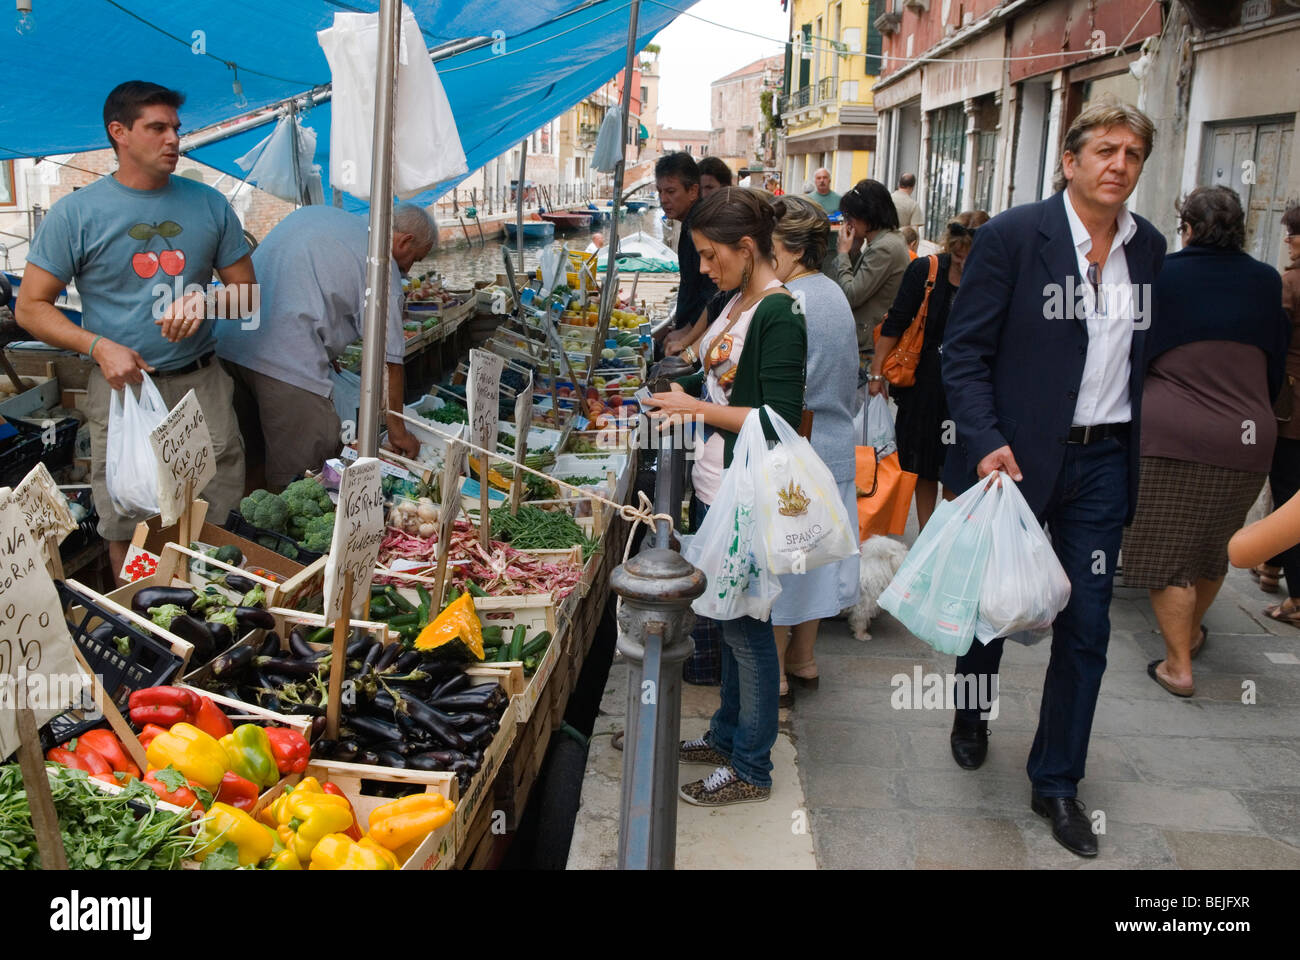 Venice Italy People doing vegetable shopping on canal boat Arsenale Venice. HOMER SYKES - Stock Image